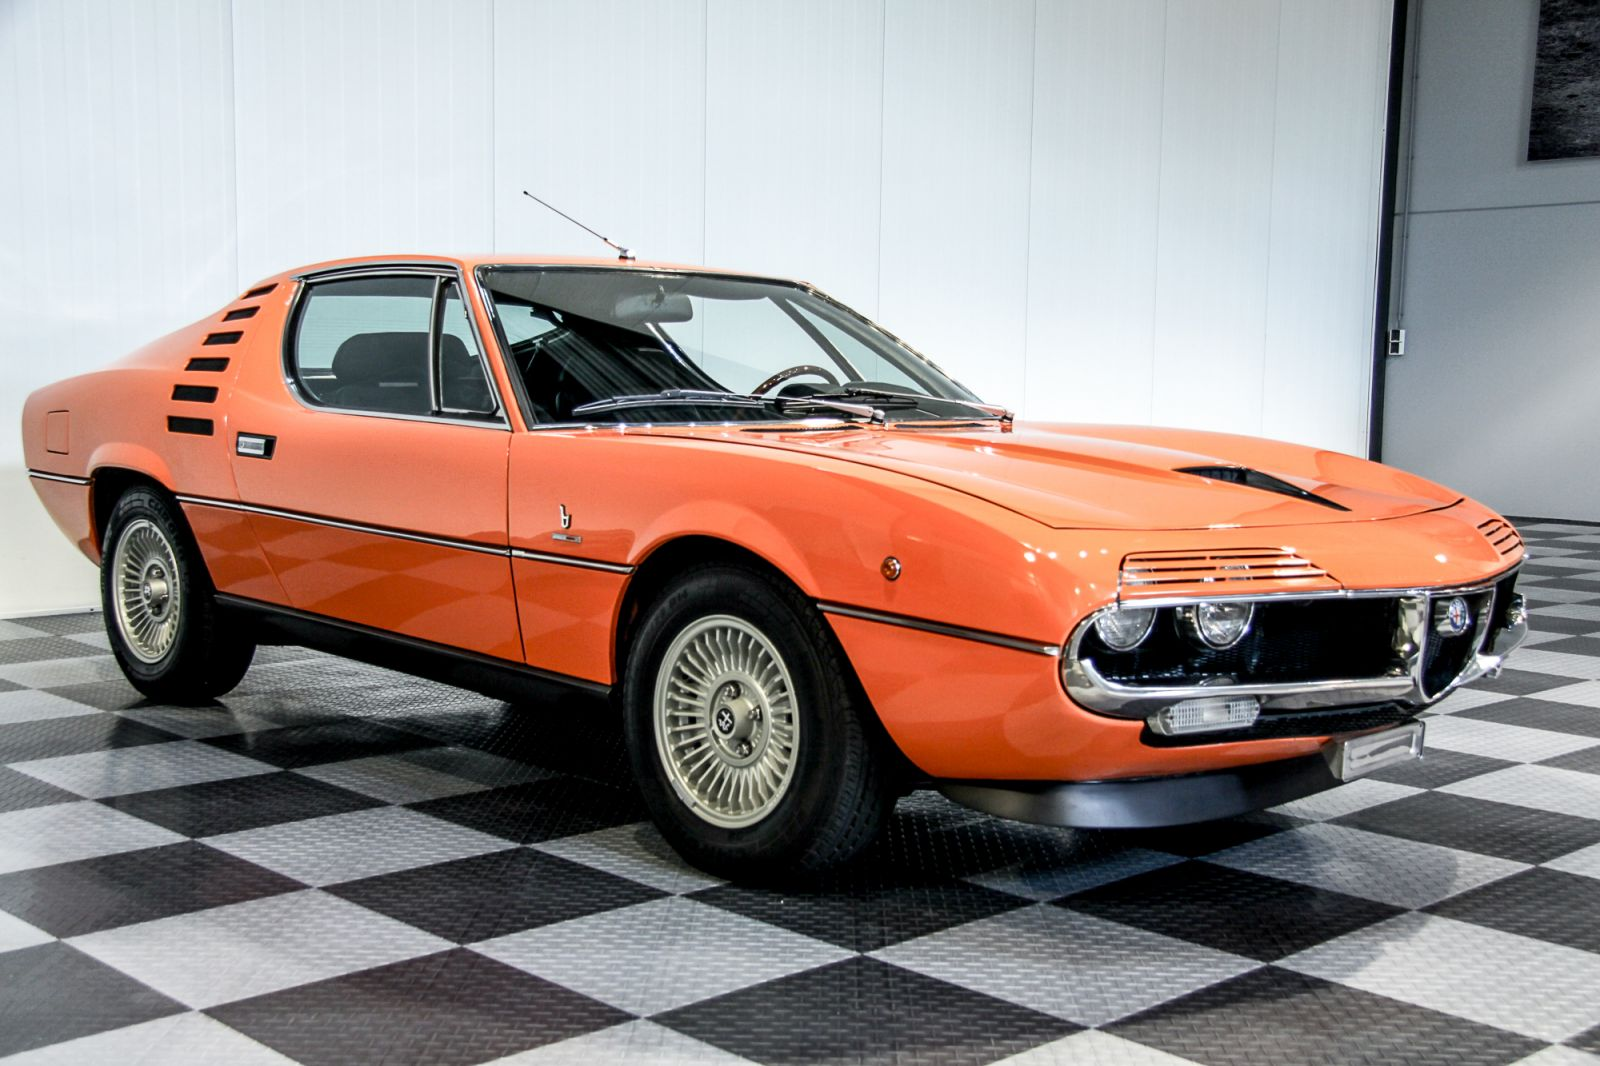 Dream garage sold carsalfa romeo alfa romeo montreal for Garage alfa romeo luxembourg